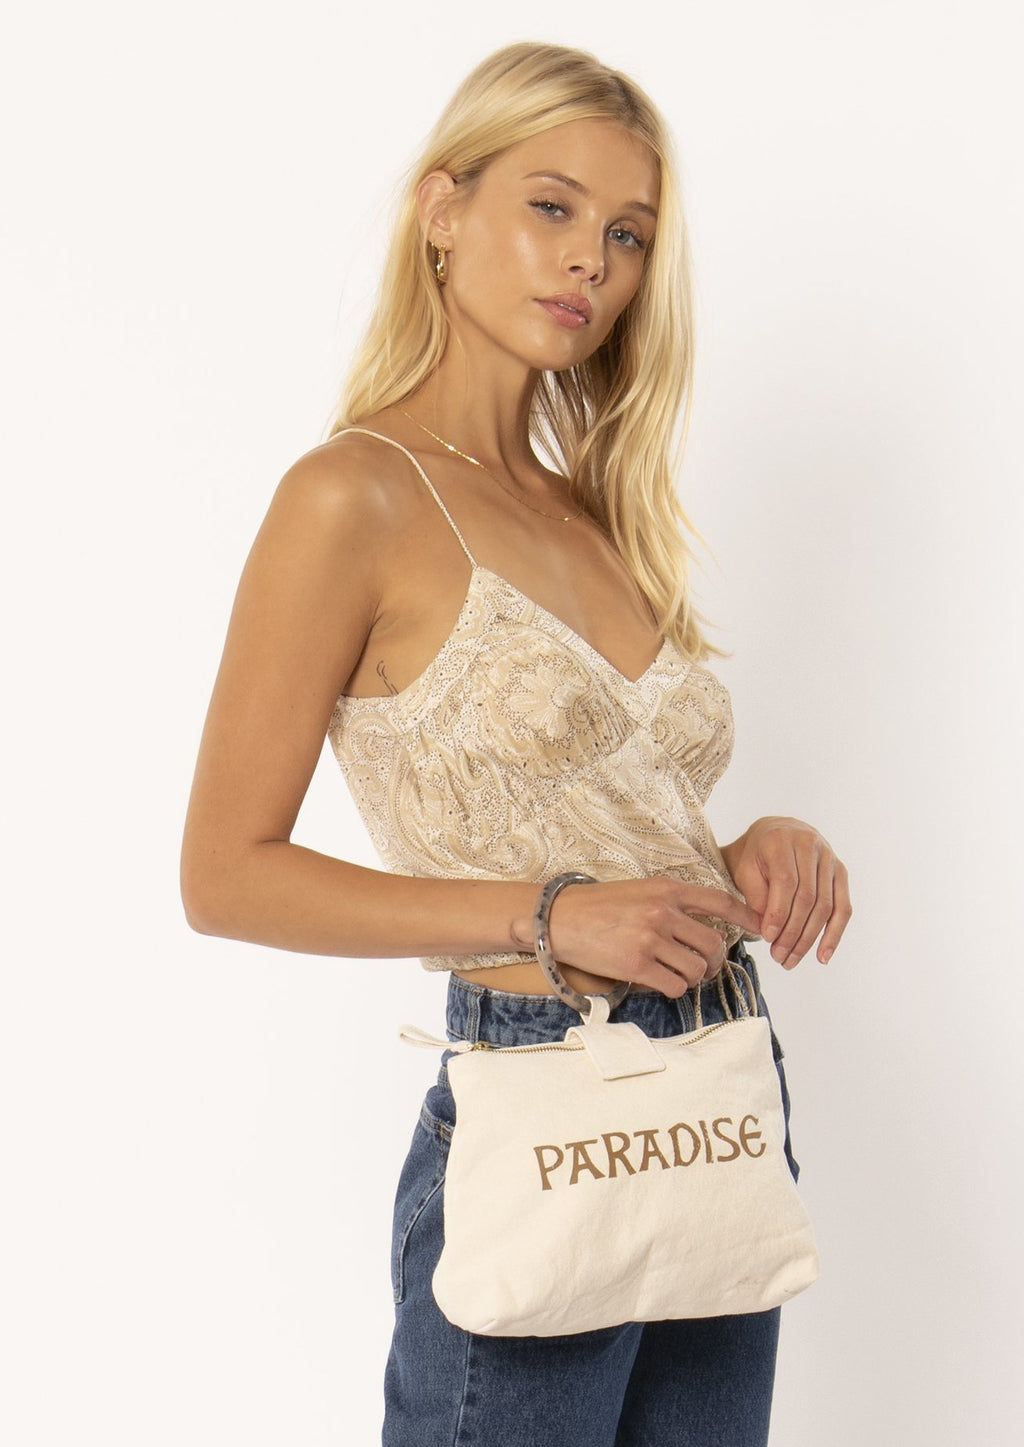 The zip-top bag features large wrist sized tortoise shell ring to make carrying easy and chic.